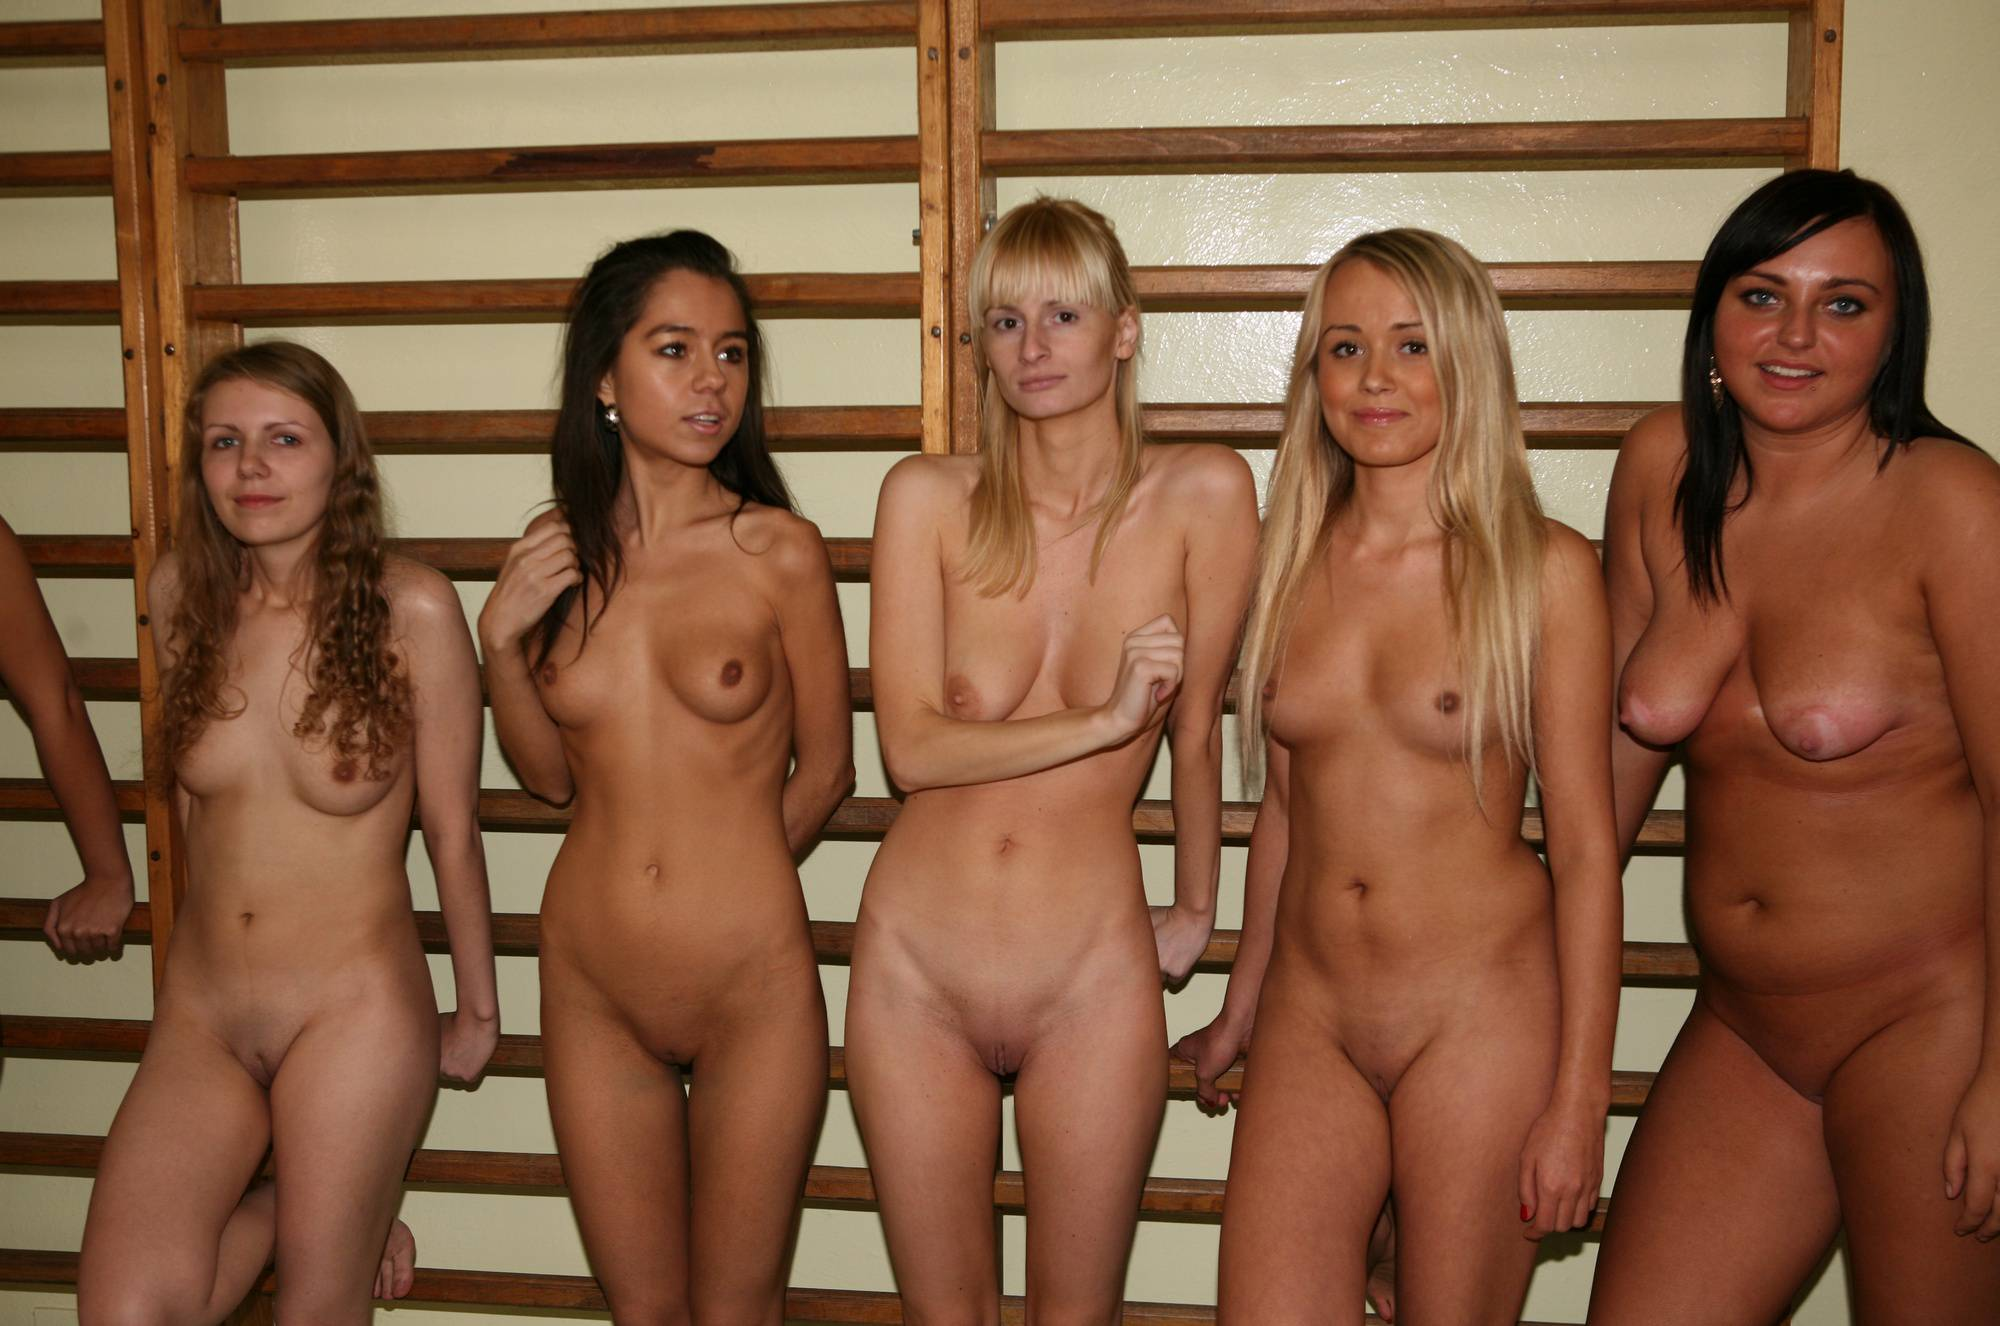 Nudist Pictures Gym Stand Along the Wall - 1